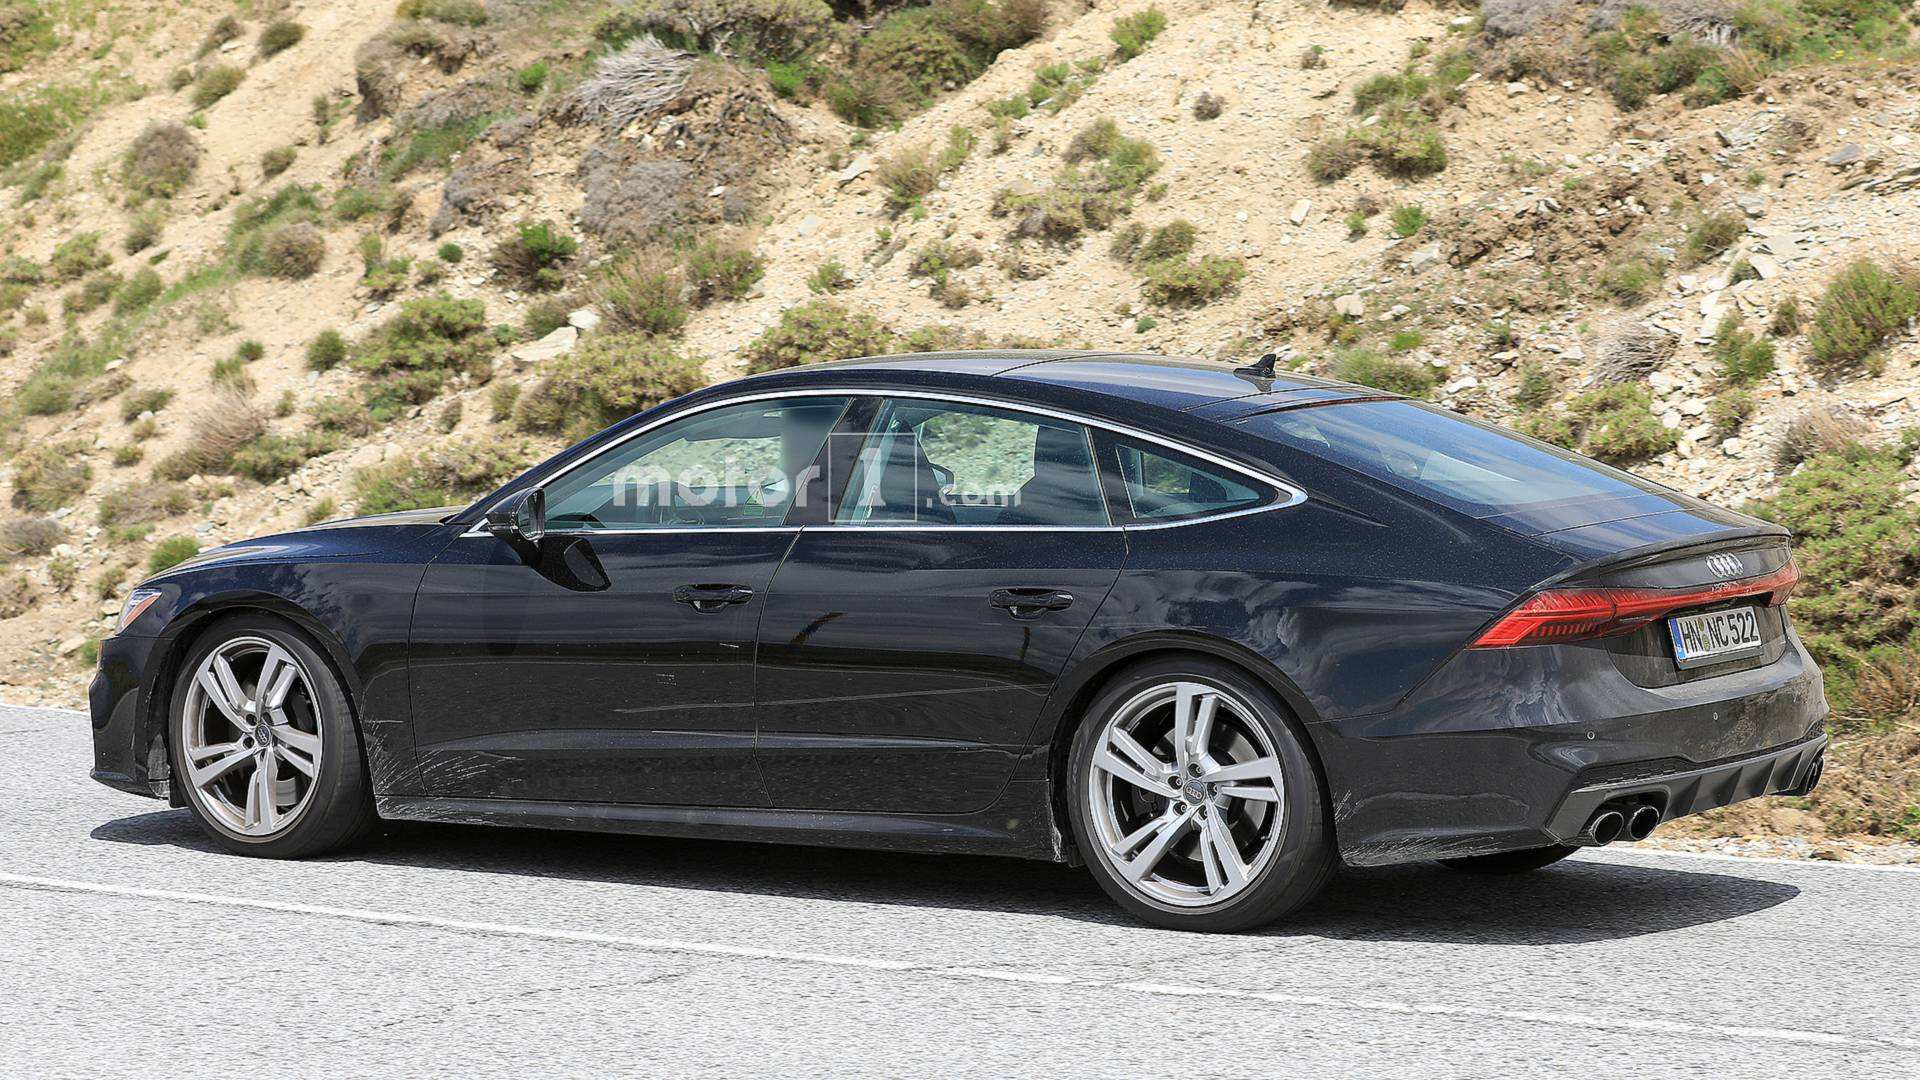 49 The 2020 Audi S7 Exterior and Interior with 2020 Audi S7